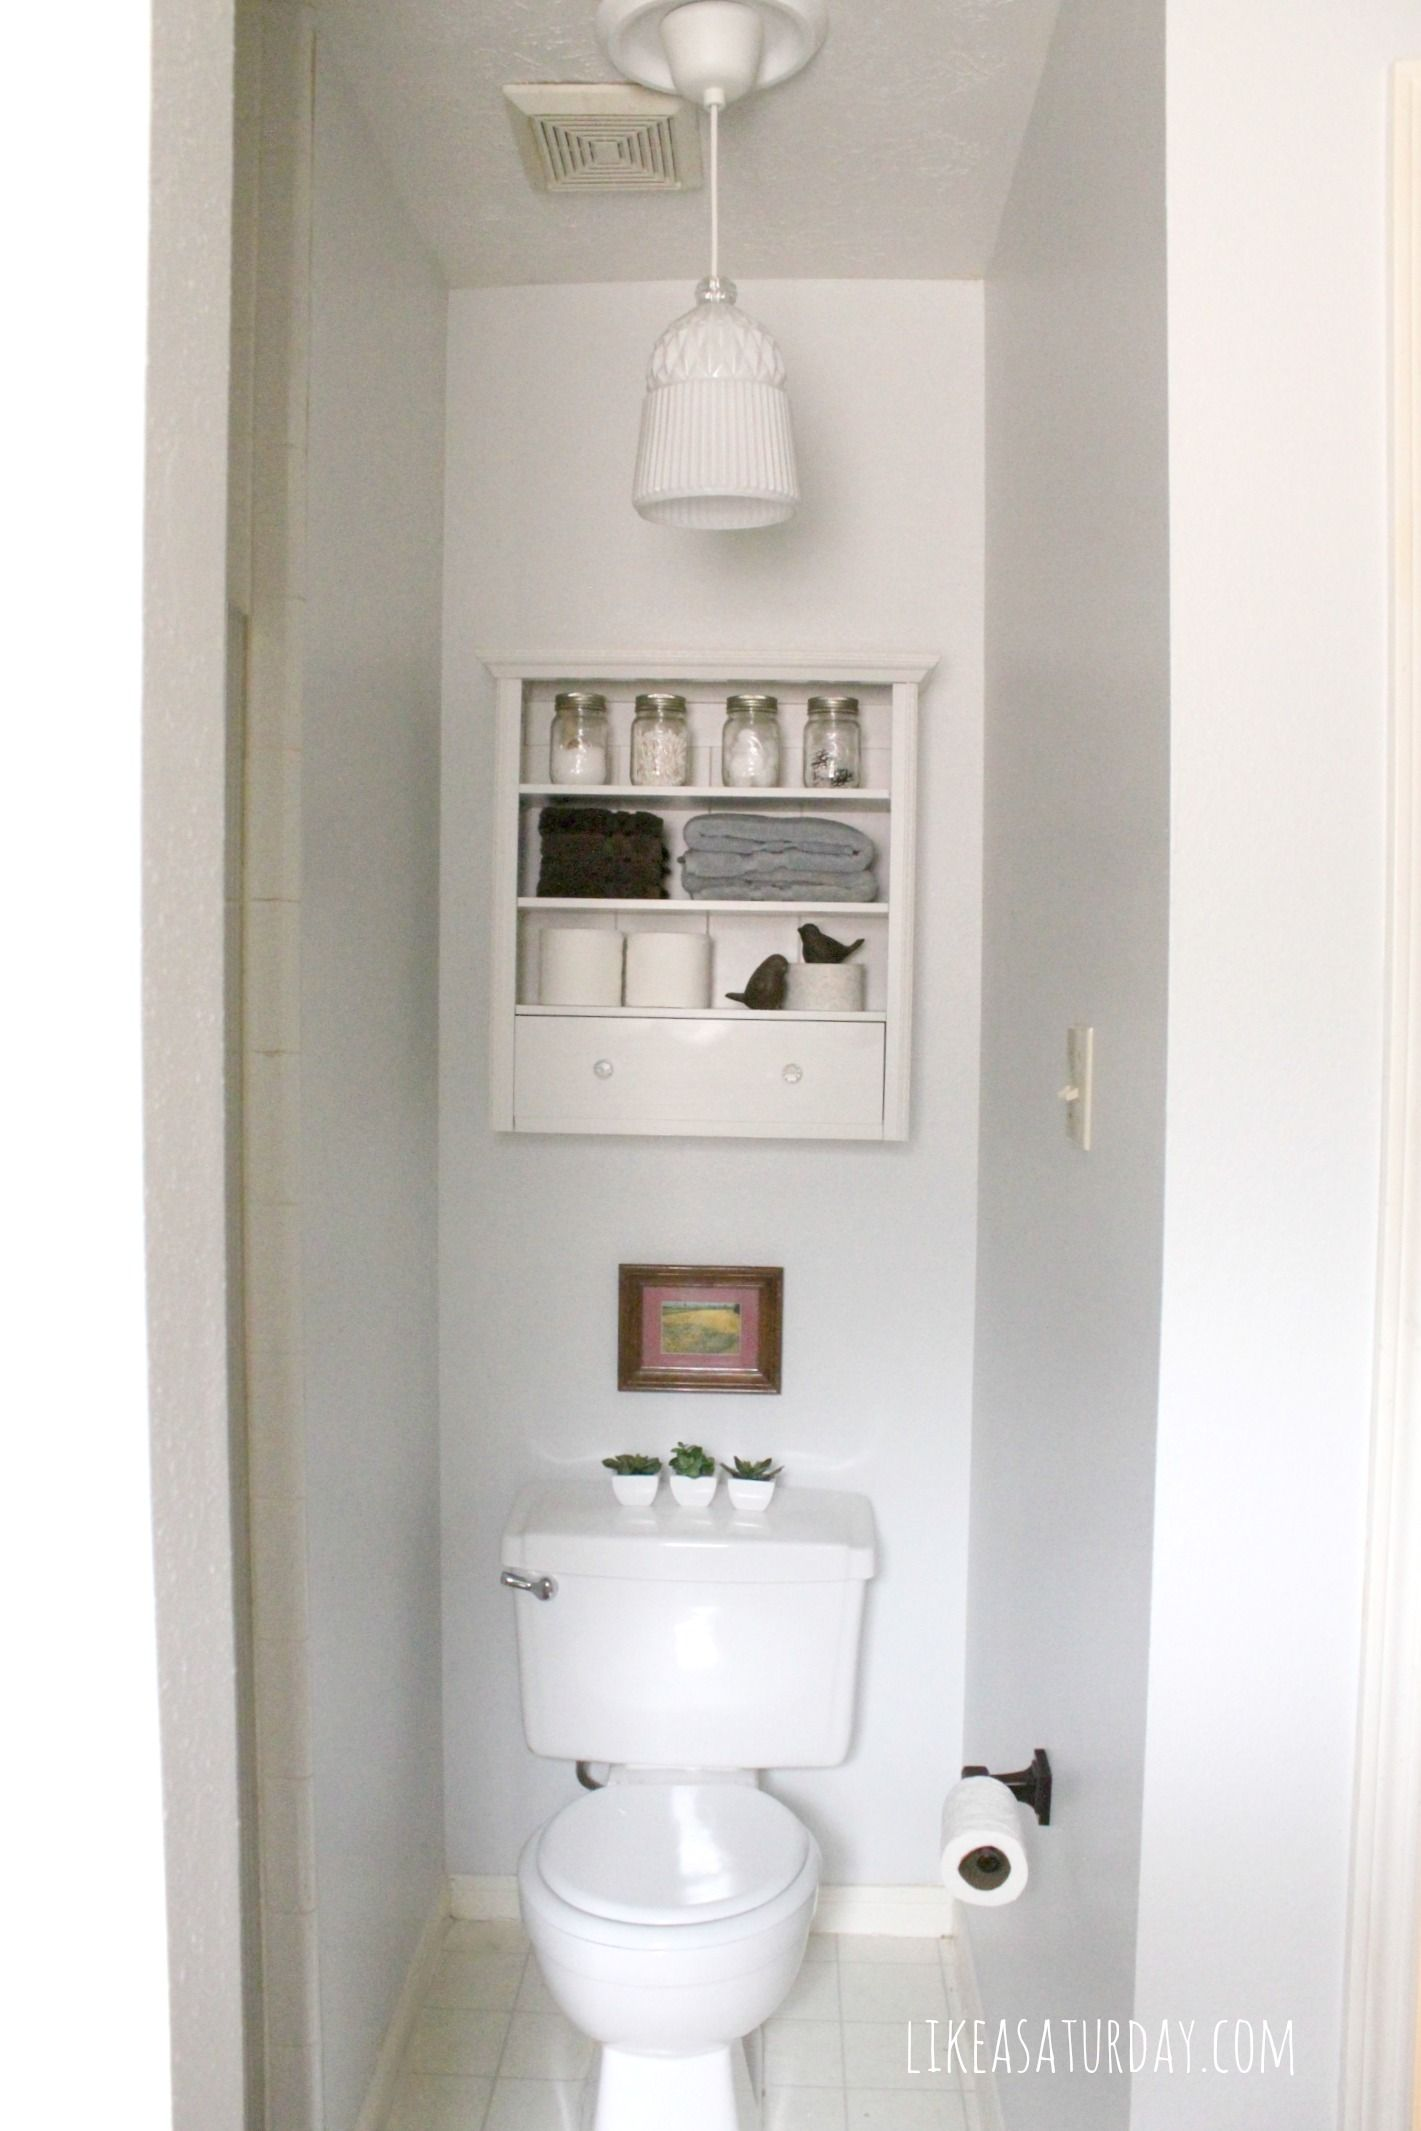 Water Closet Storage Above Toilet To Fit Tp Cleaner And Chuck S Magazines